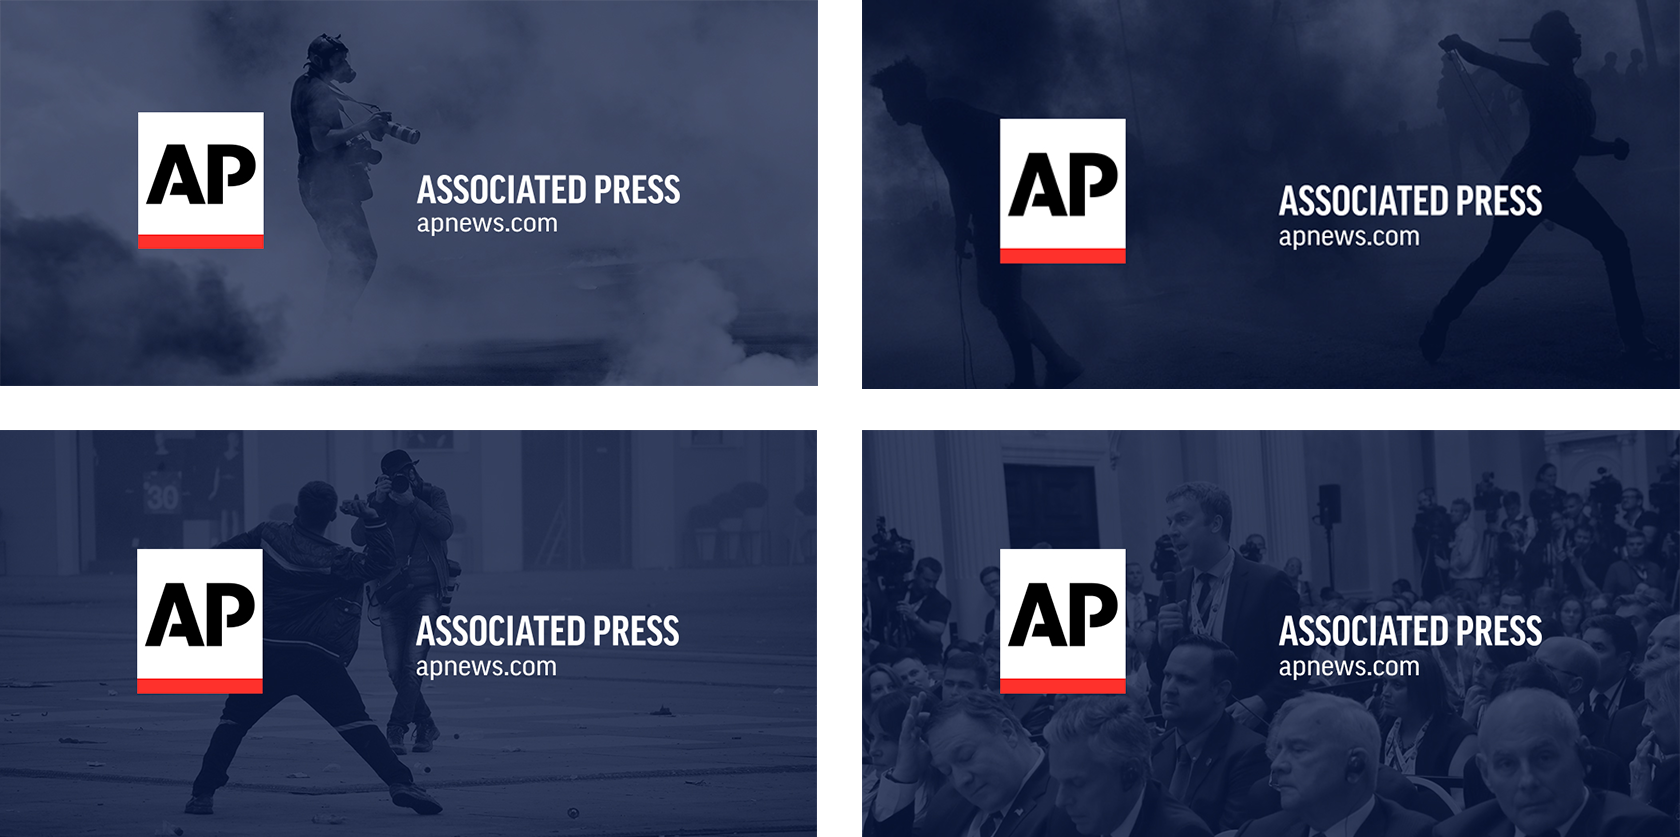 Ap-news-share-images